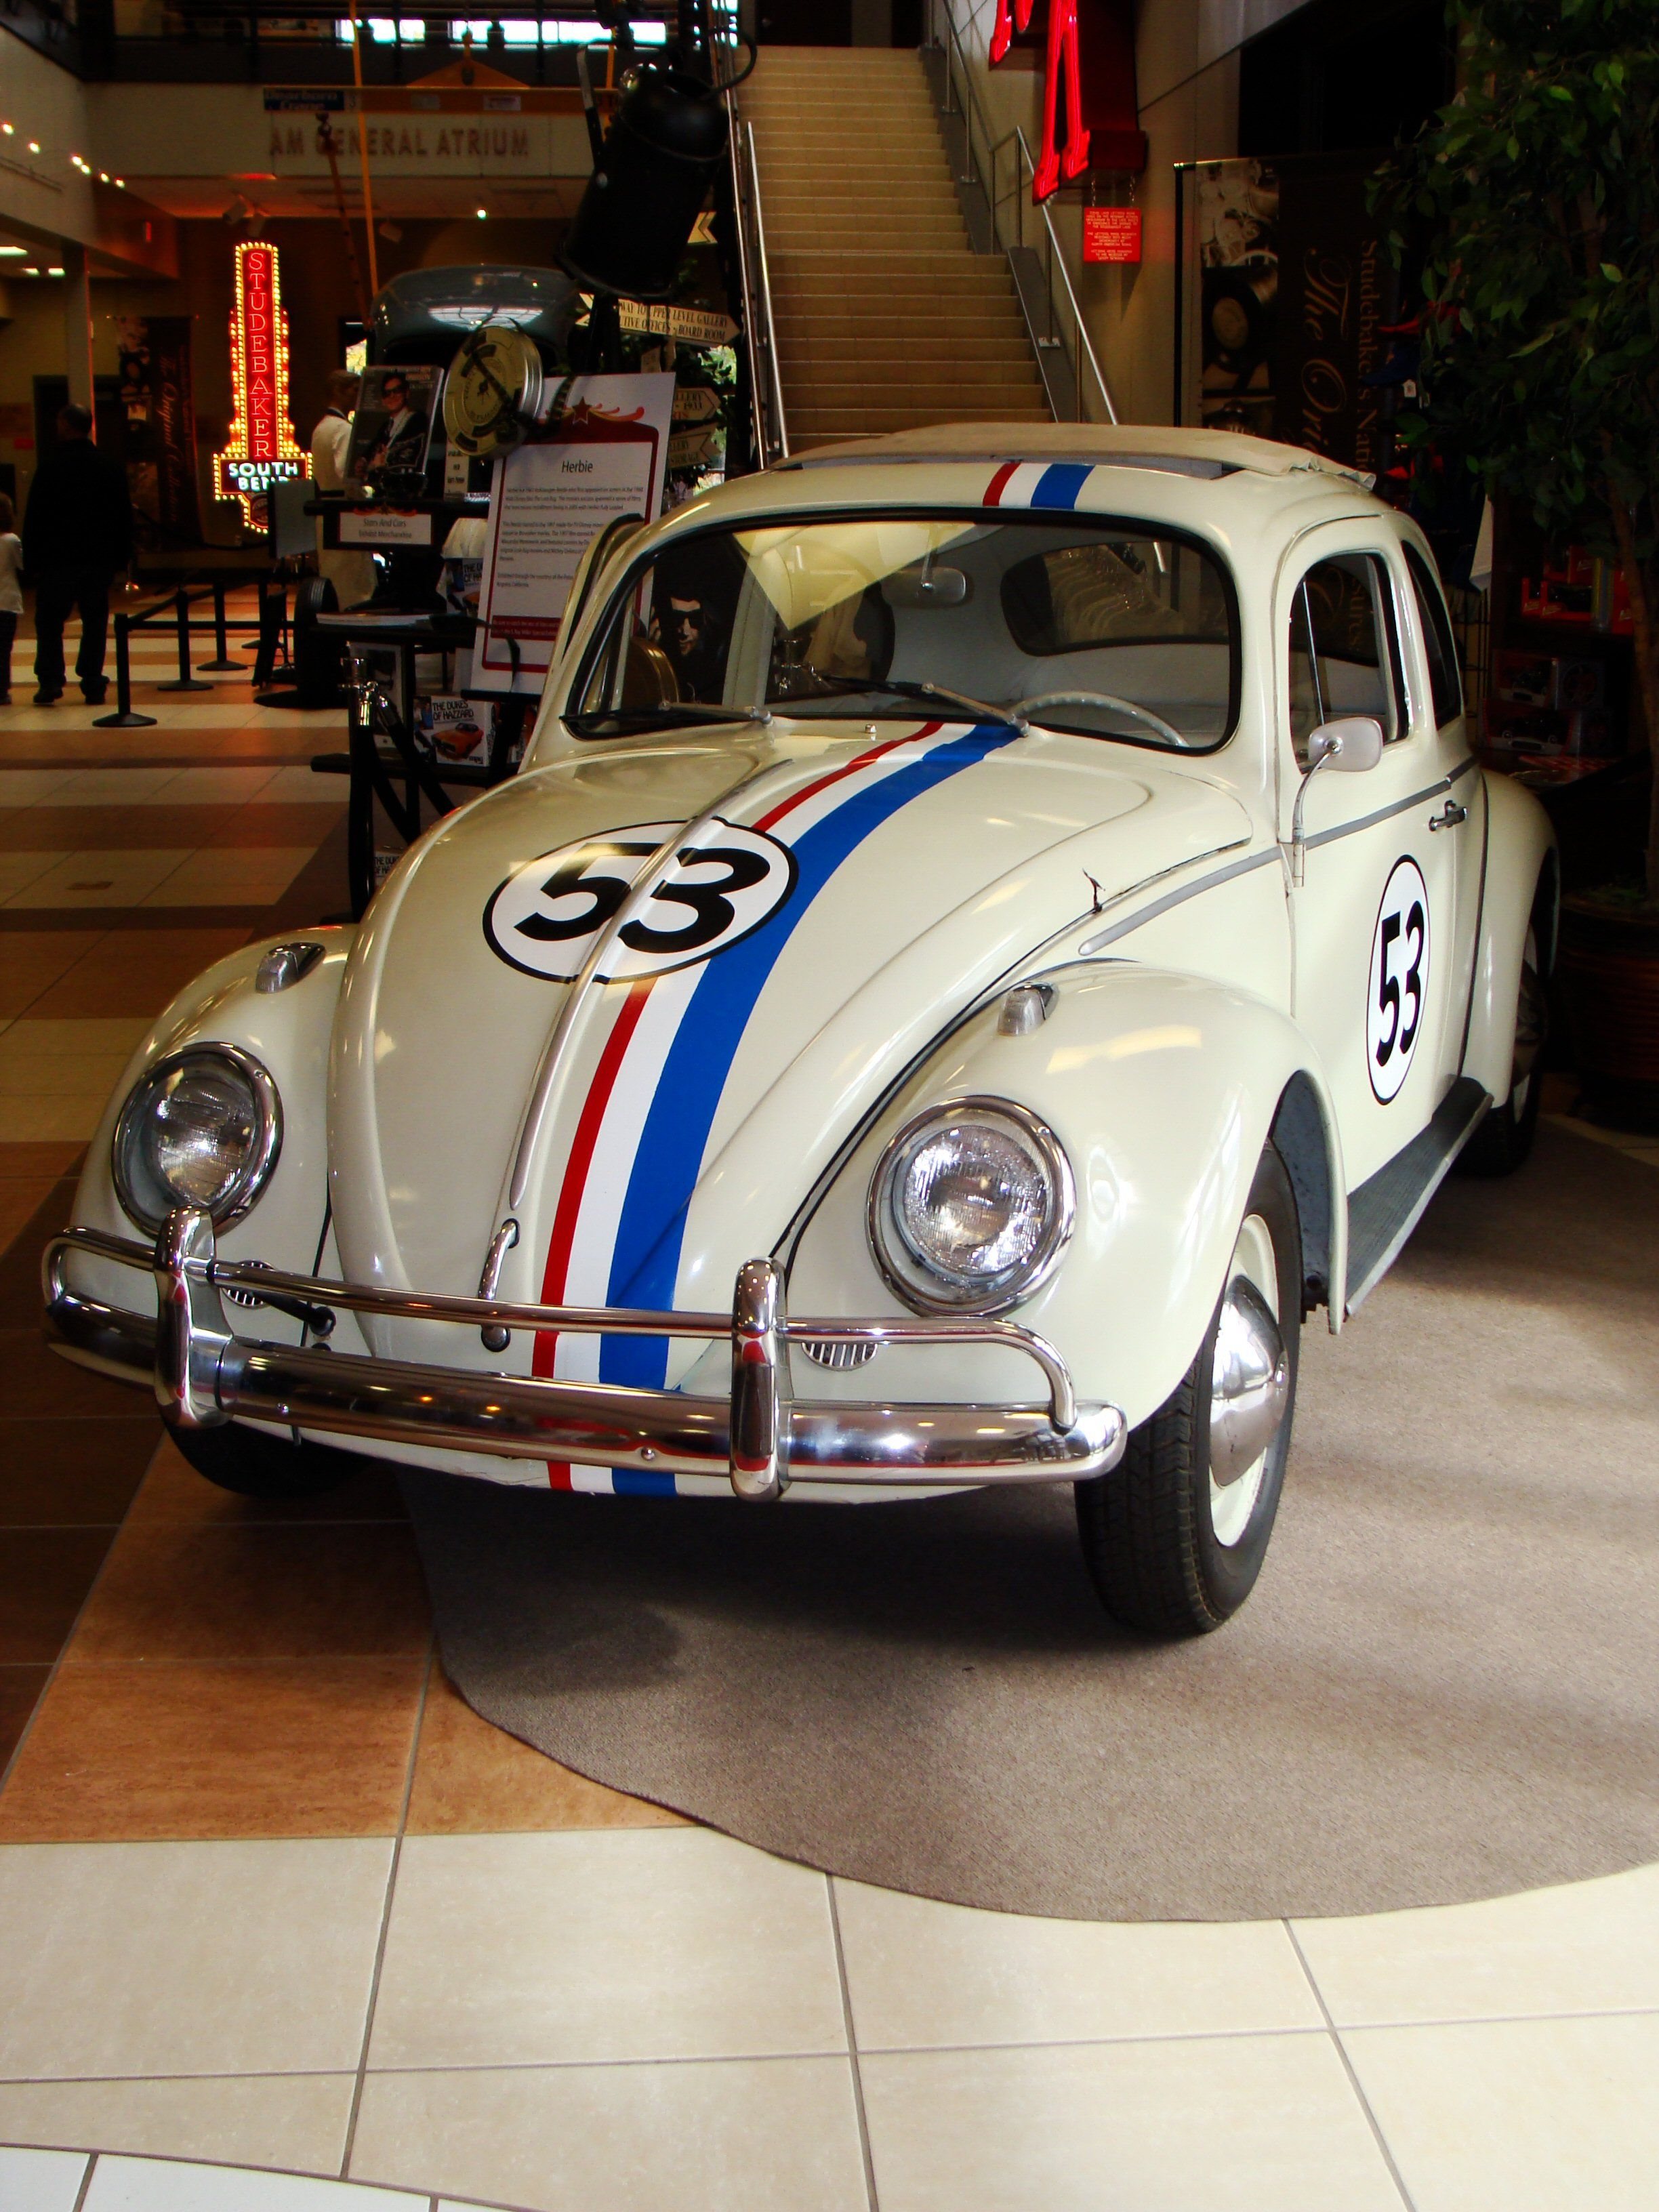 3 Herbie Movies 1963 Model 117 Volkswagen Type 1 Herbie This Car Should Probably Be Number Two Or Number One O Volkswagen Classic Chevy Trucks Tv Cars [ 3264 x 2448 Pixel ]